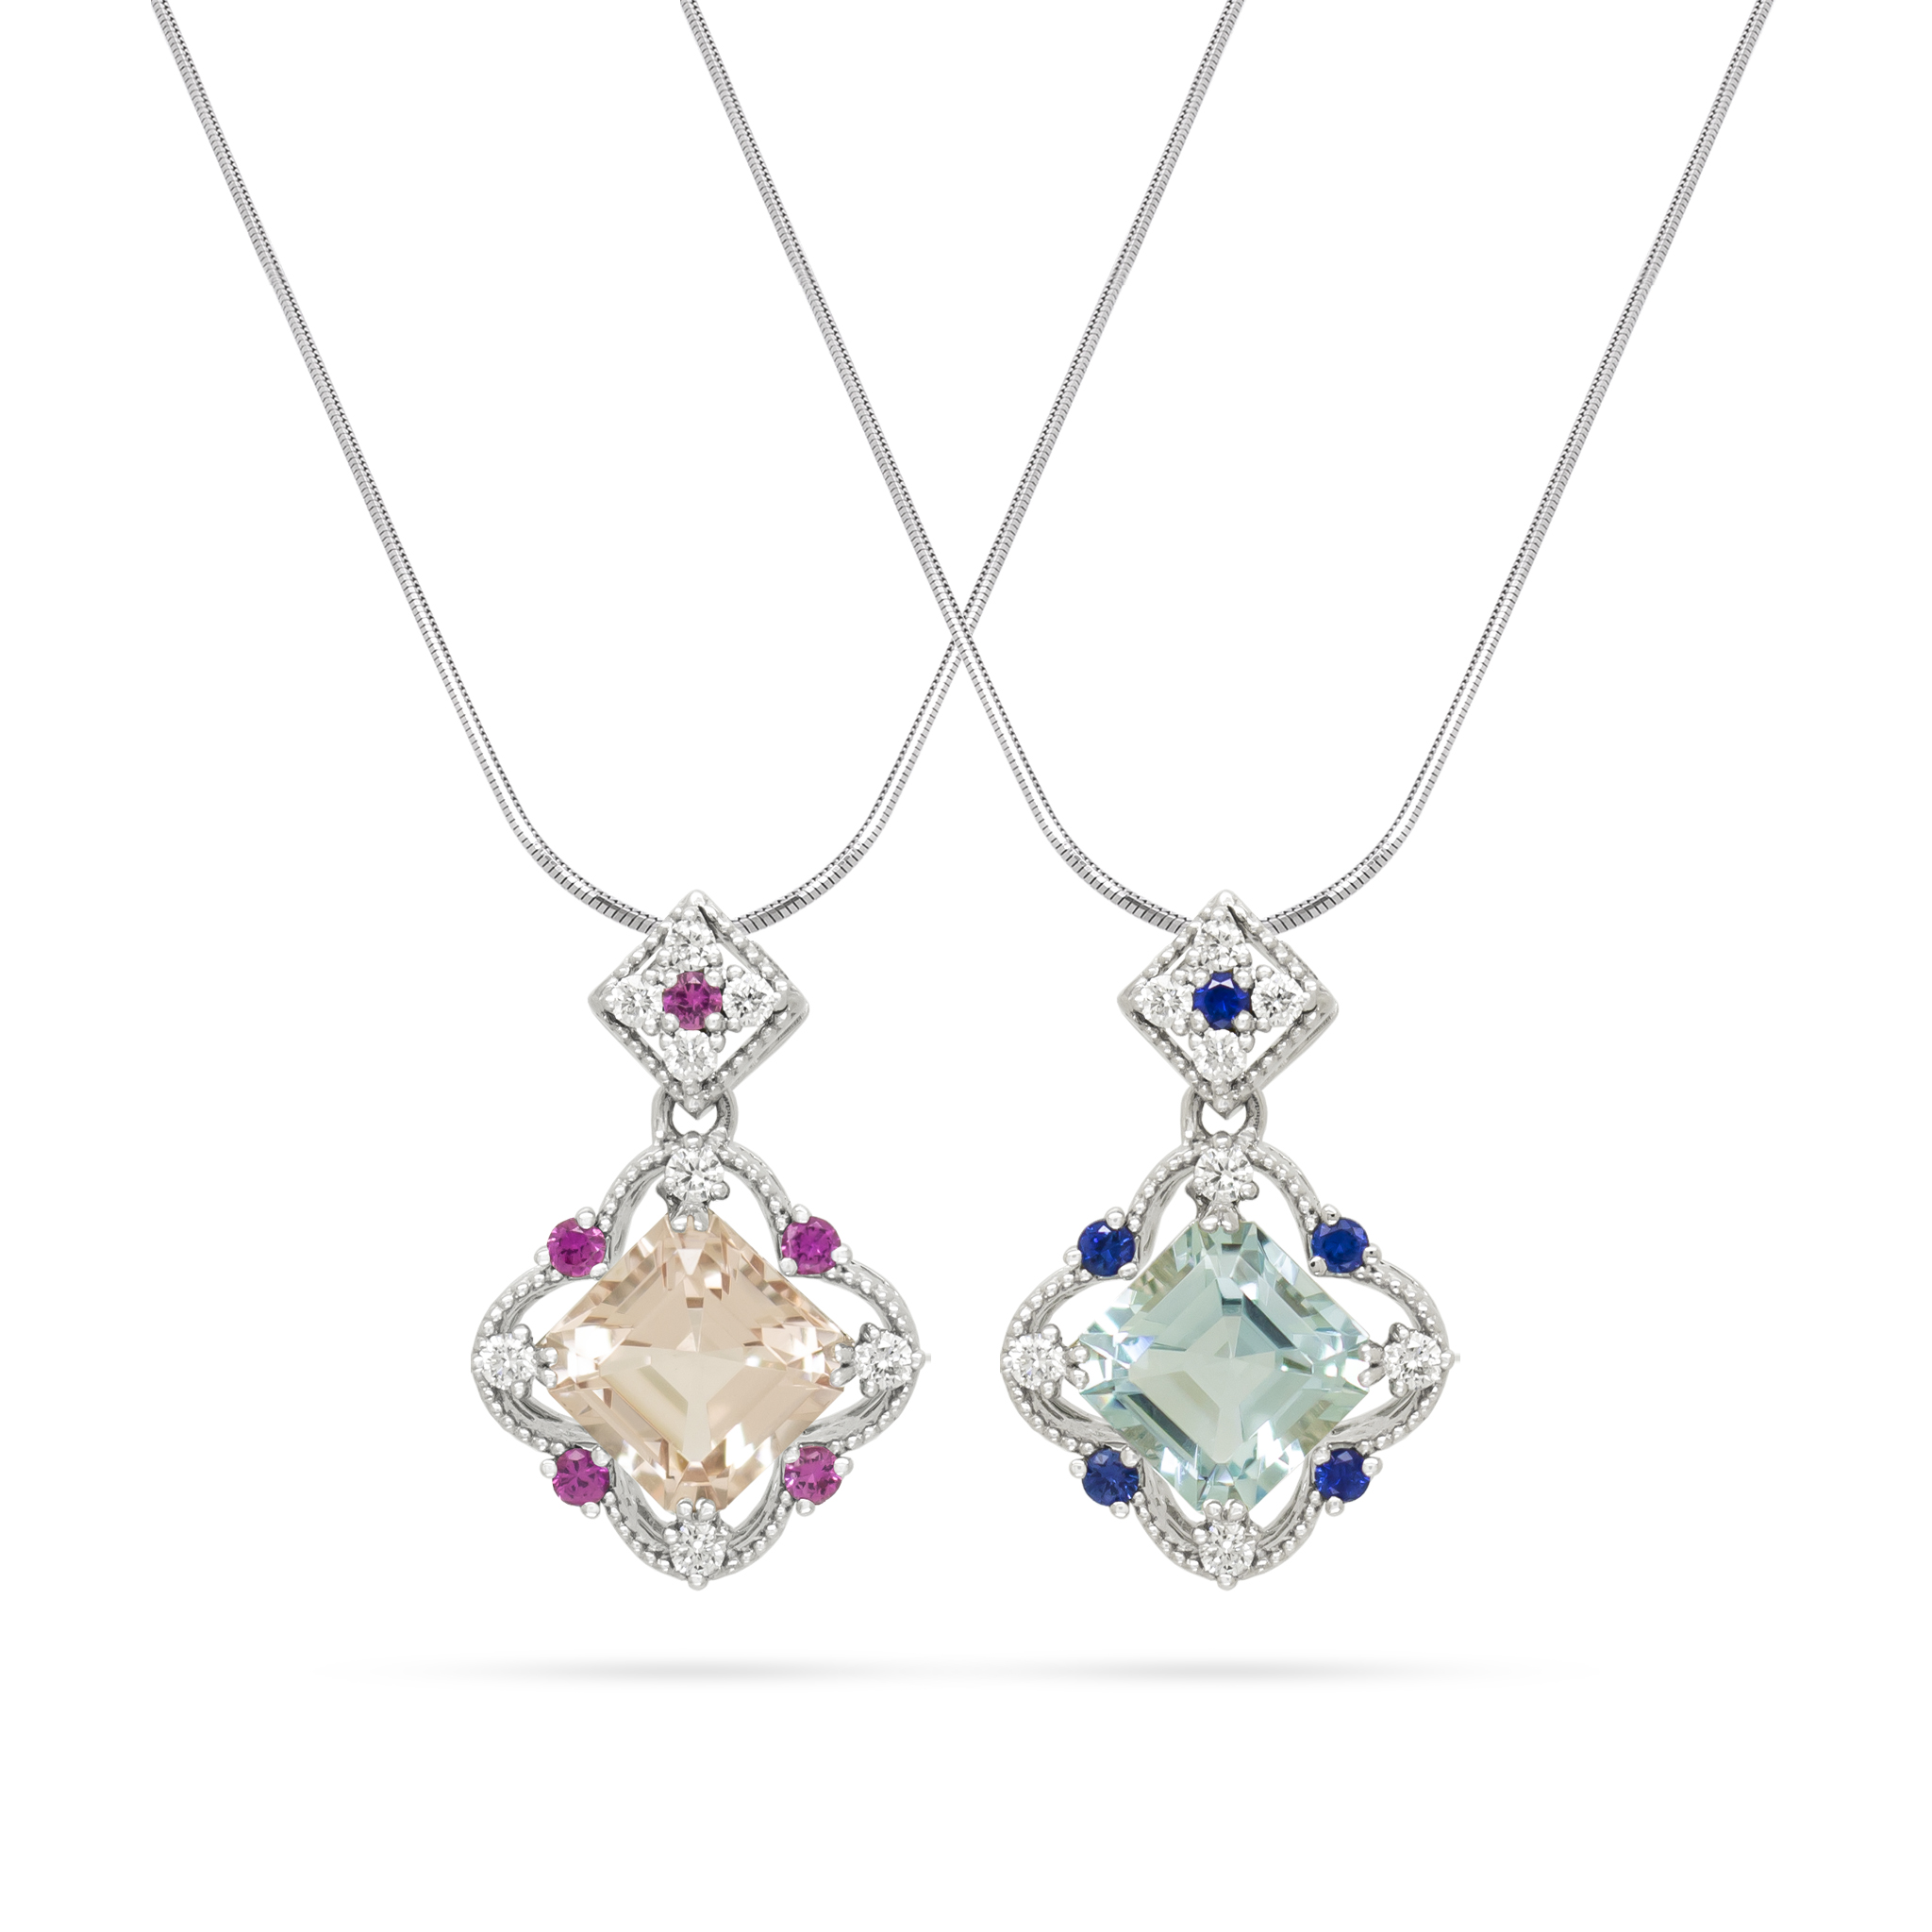 Aqua-Morganite Sisters' Pendants